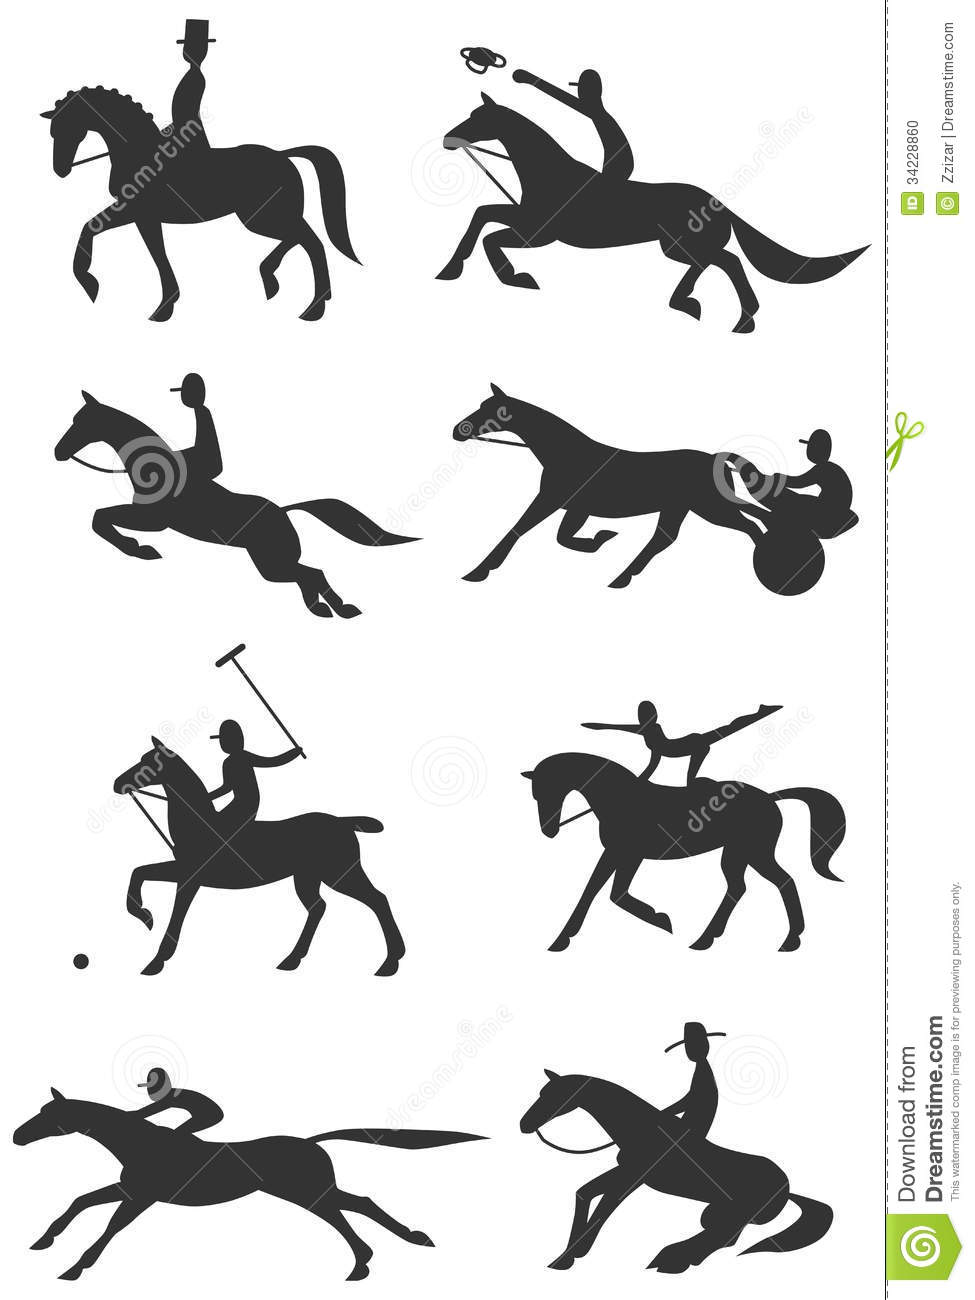 Icons Equestrian Sports Stock Photo.